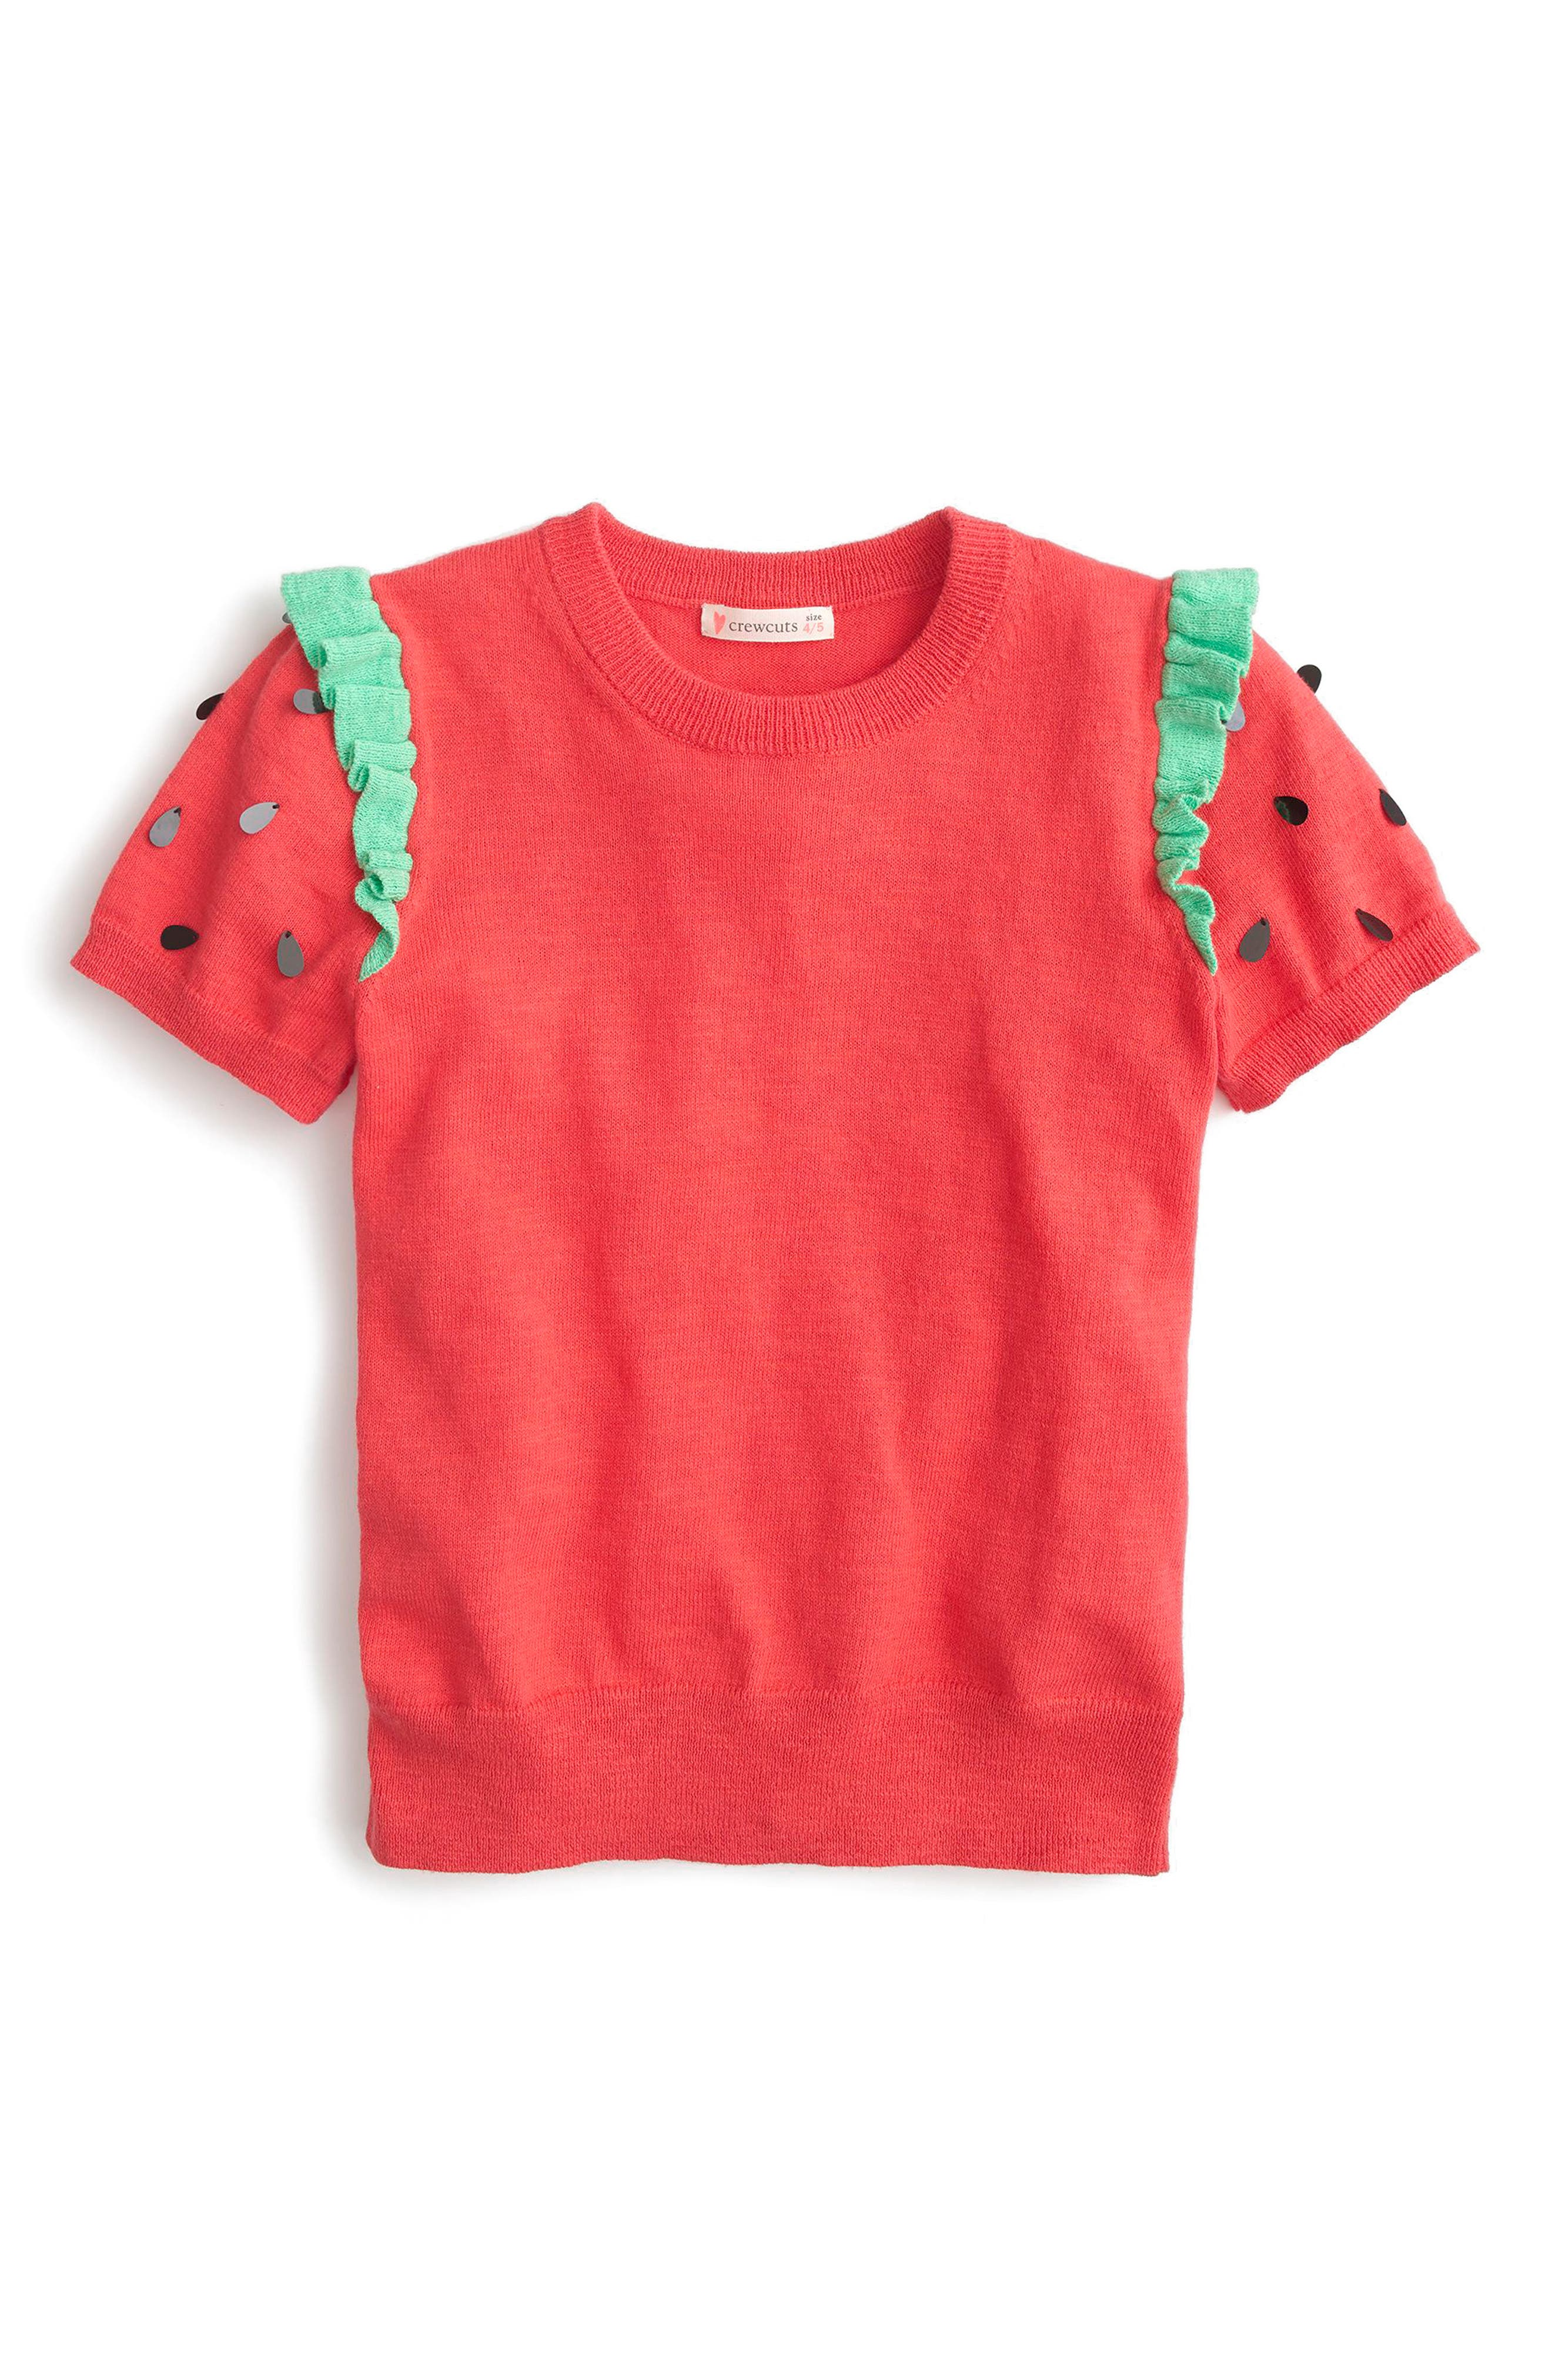 J.Crew Strawberry Goodness Short Sleeve Sweater,                         Main,                         color, Red Green Multi